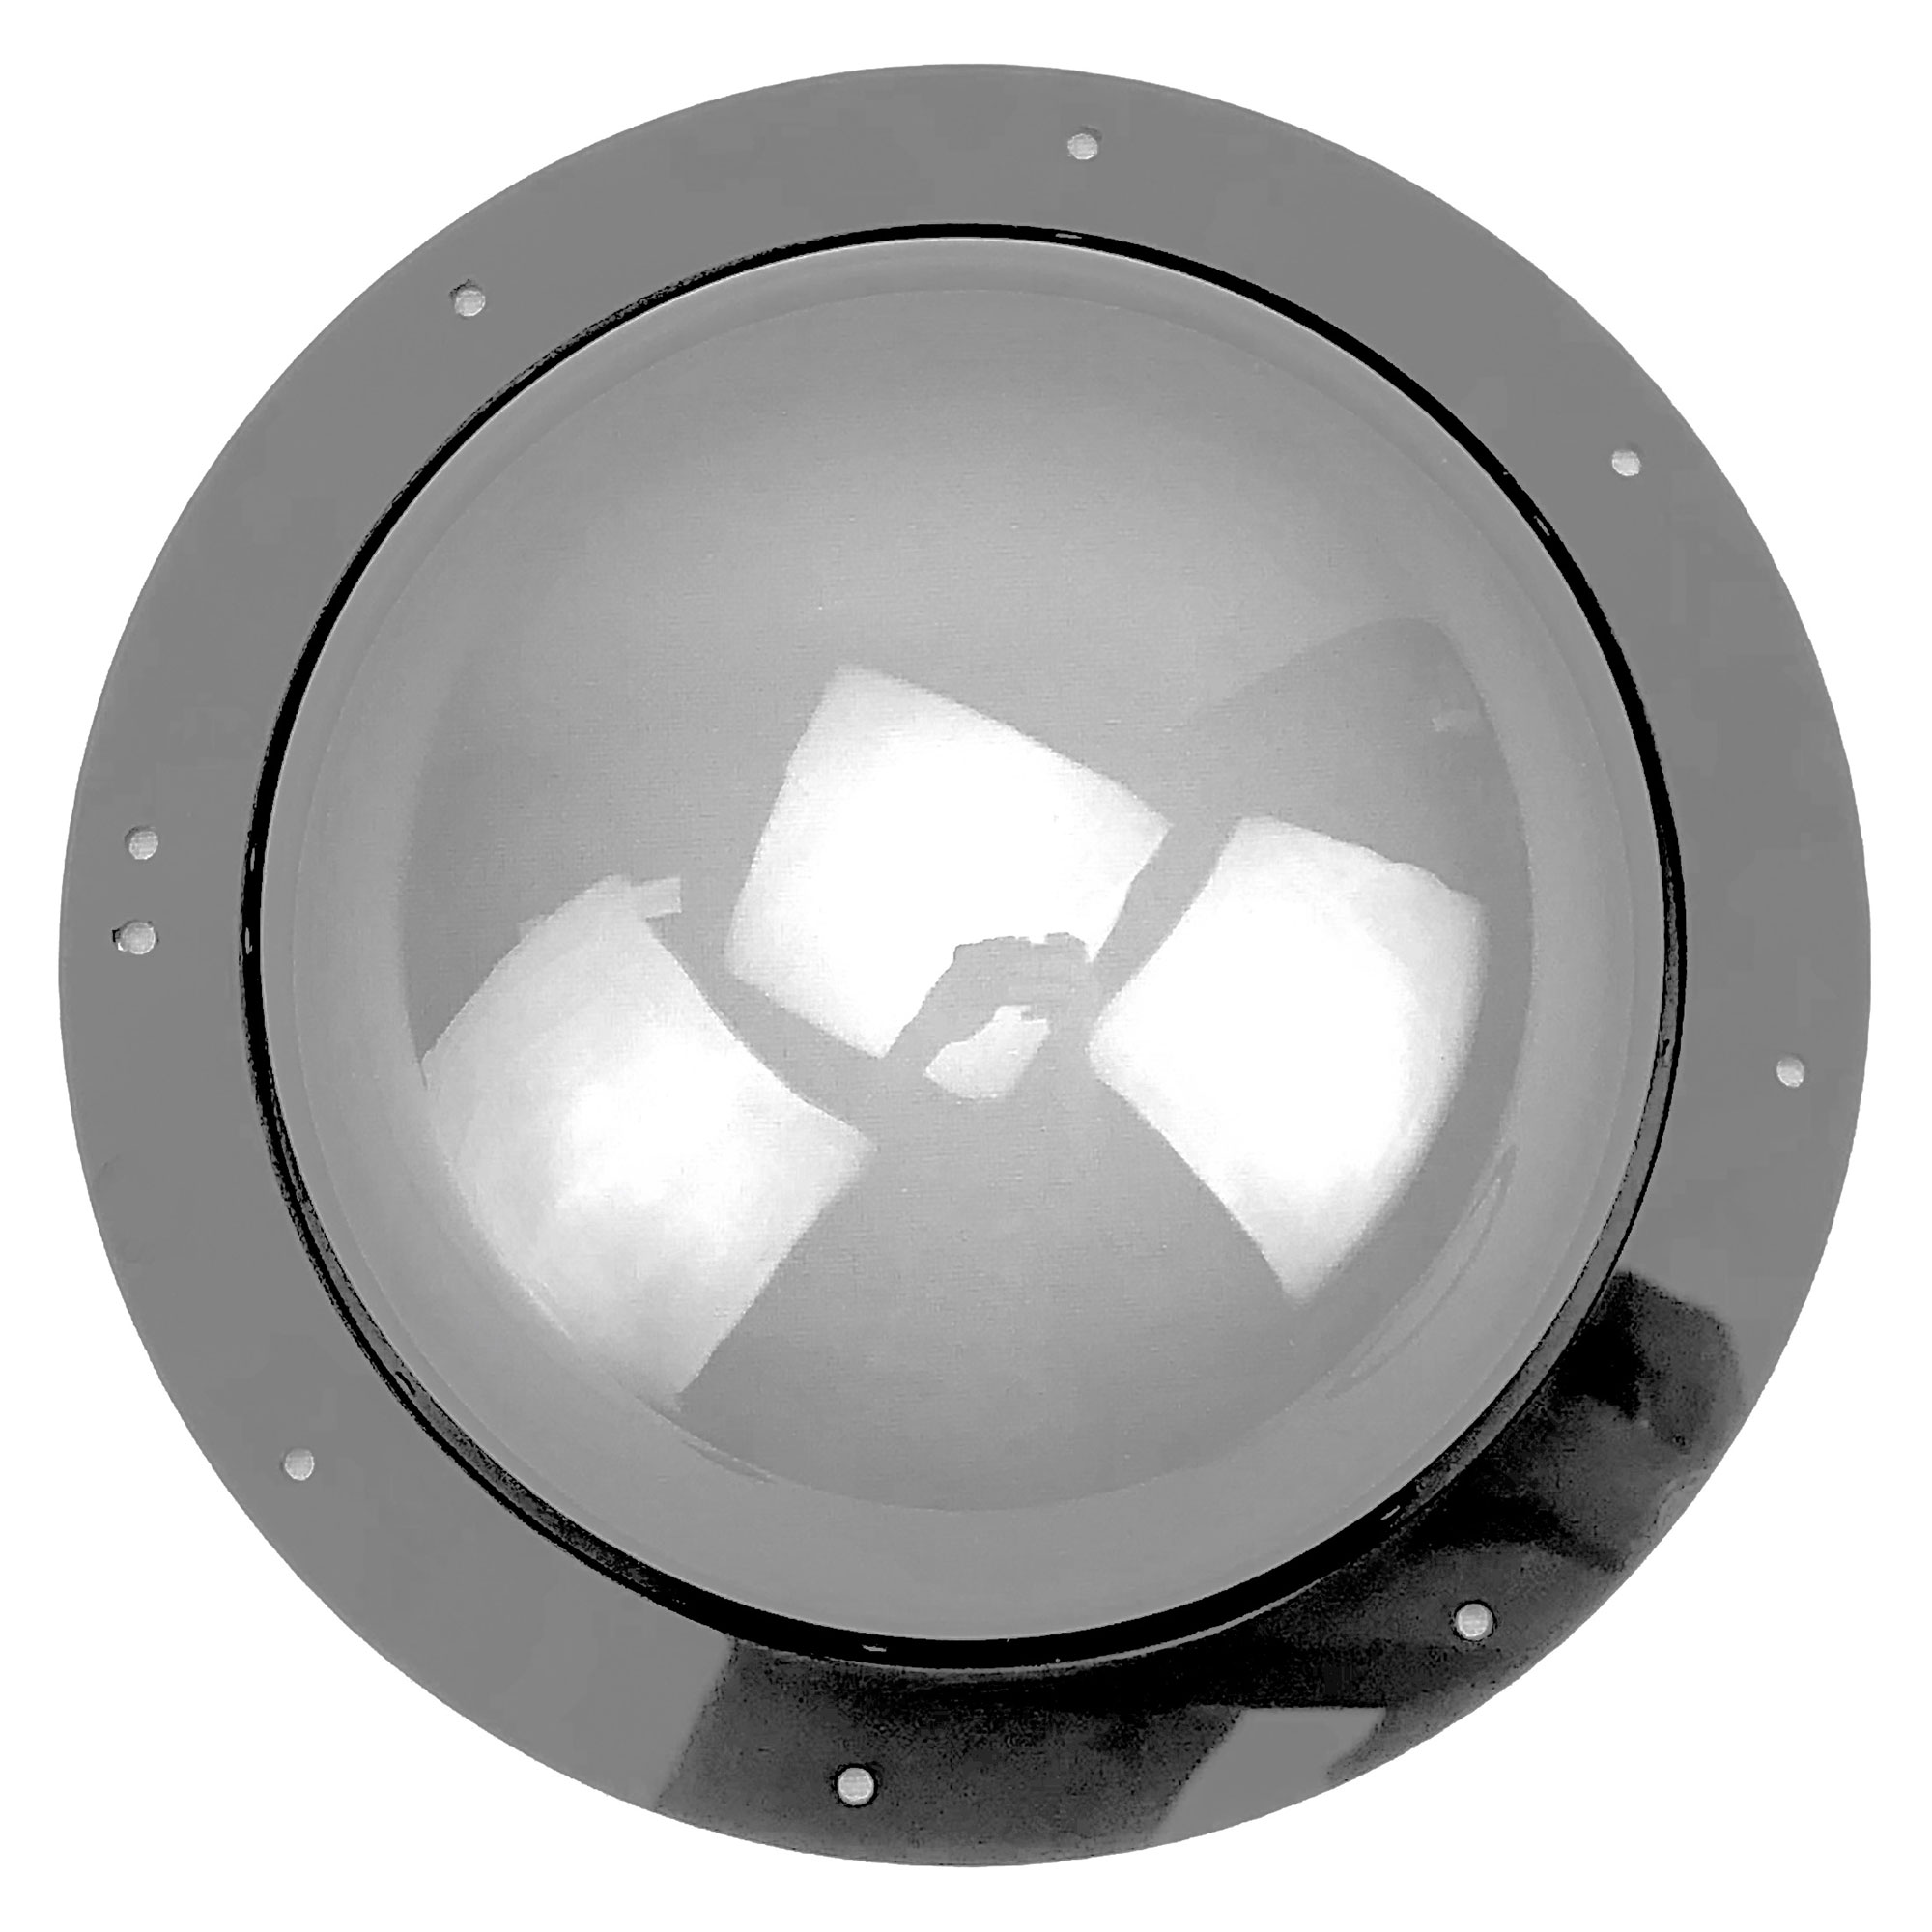 Half Sphere Lens For BASH - Tinted Lens Option (AC-HS-LENS-C)